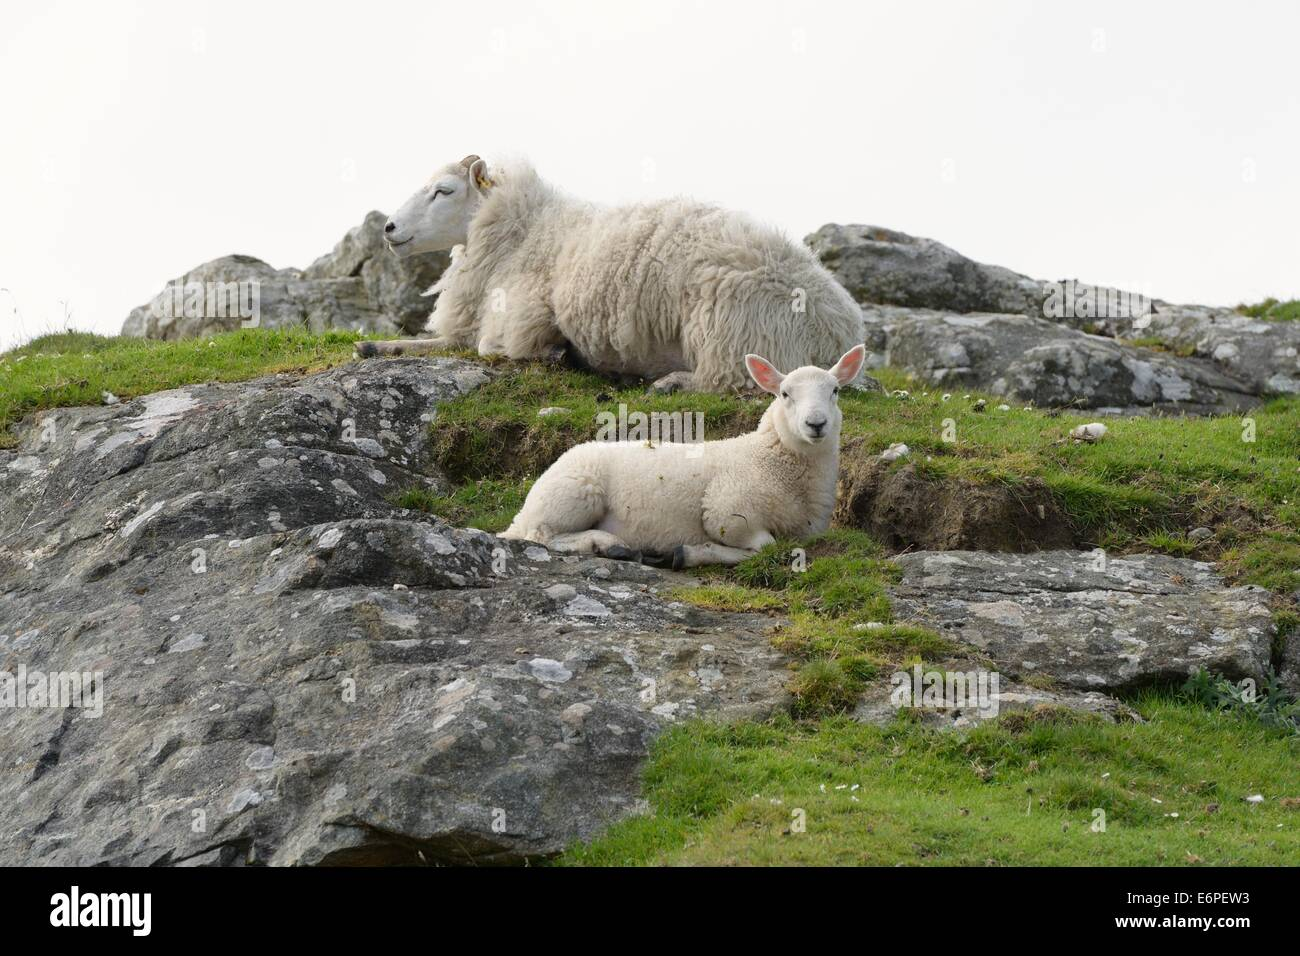 A ewe and her lamb resting on rocks in the Scottish, Outer Hebrides - Stock Image